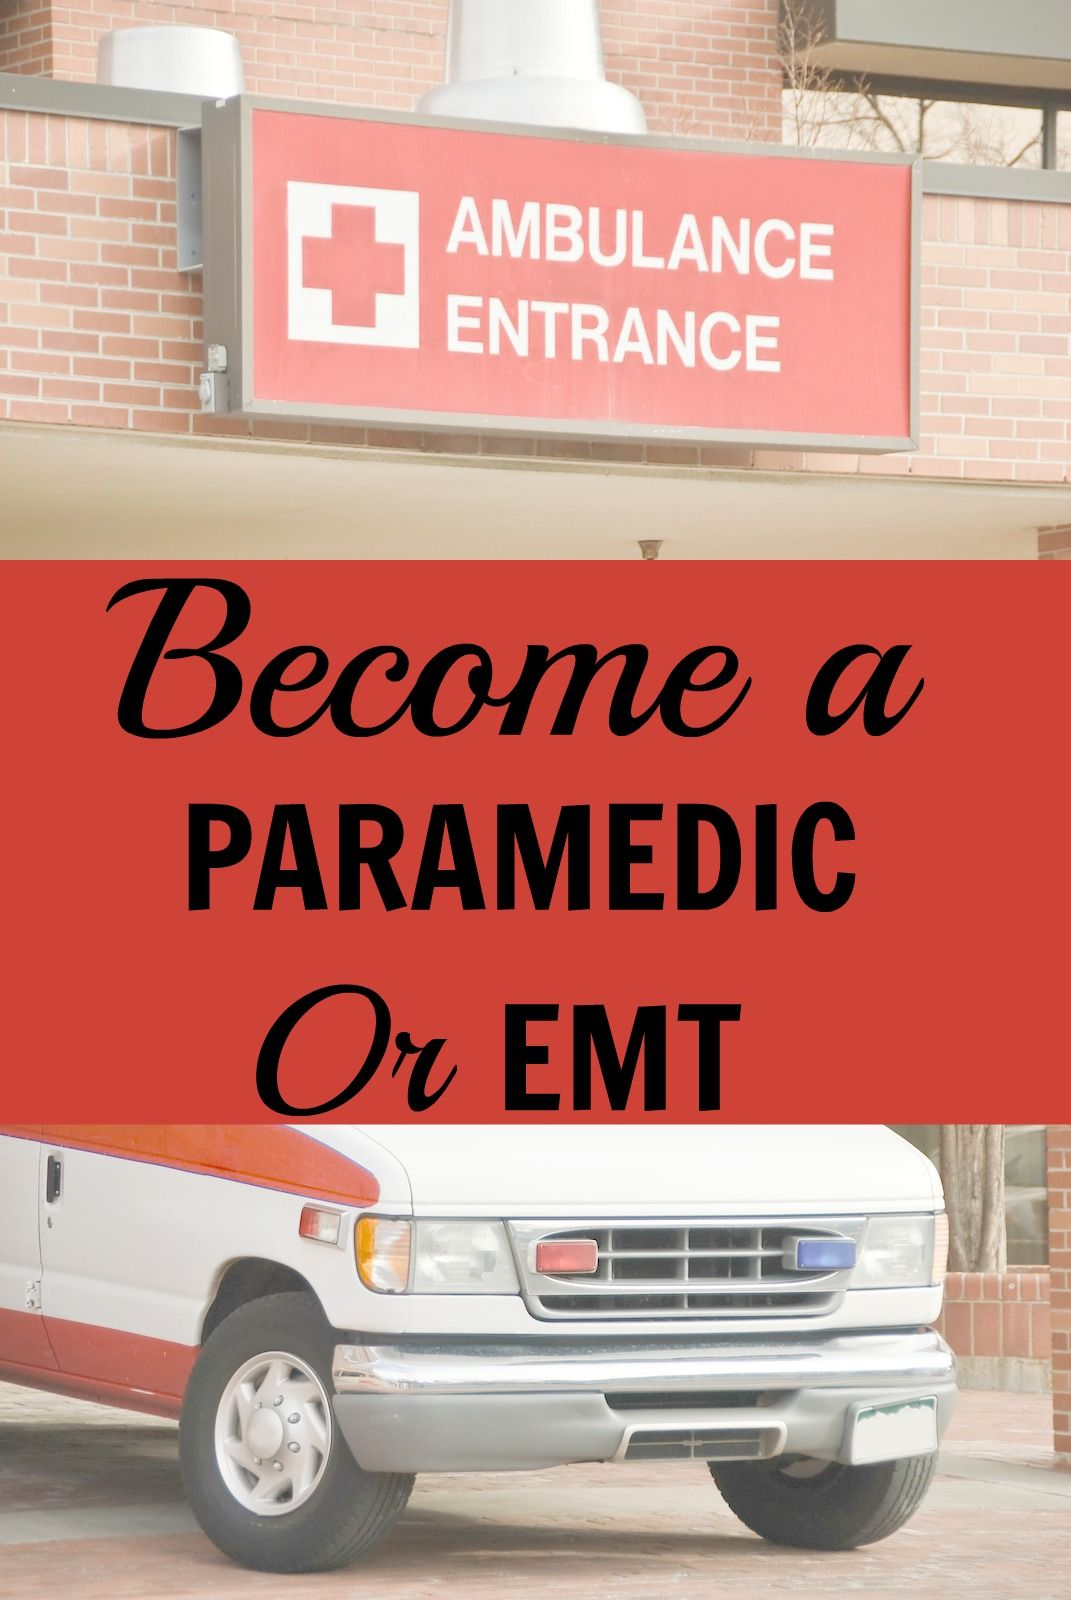 Here's Where to Get the Training to Start Saving Lives